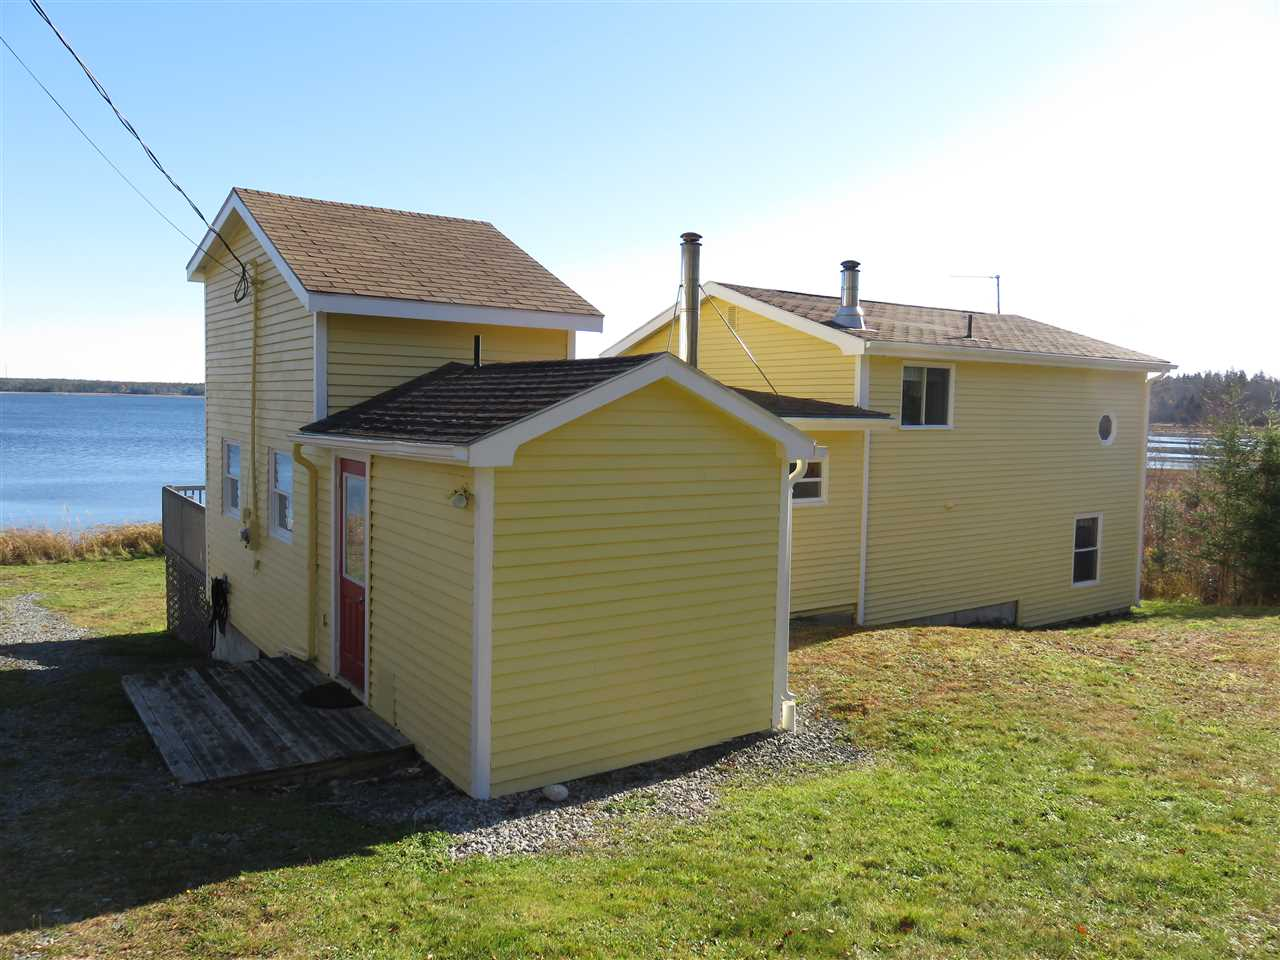 Photo 5: Photos: 783 WEST GREEN HARBOUR Road in West Green Harbour: 407-Shelburne County Residential for sale (South Shore)  : MLS® # 201701314